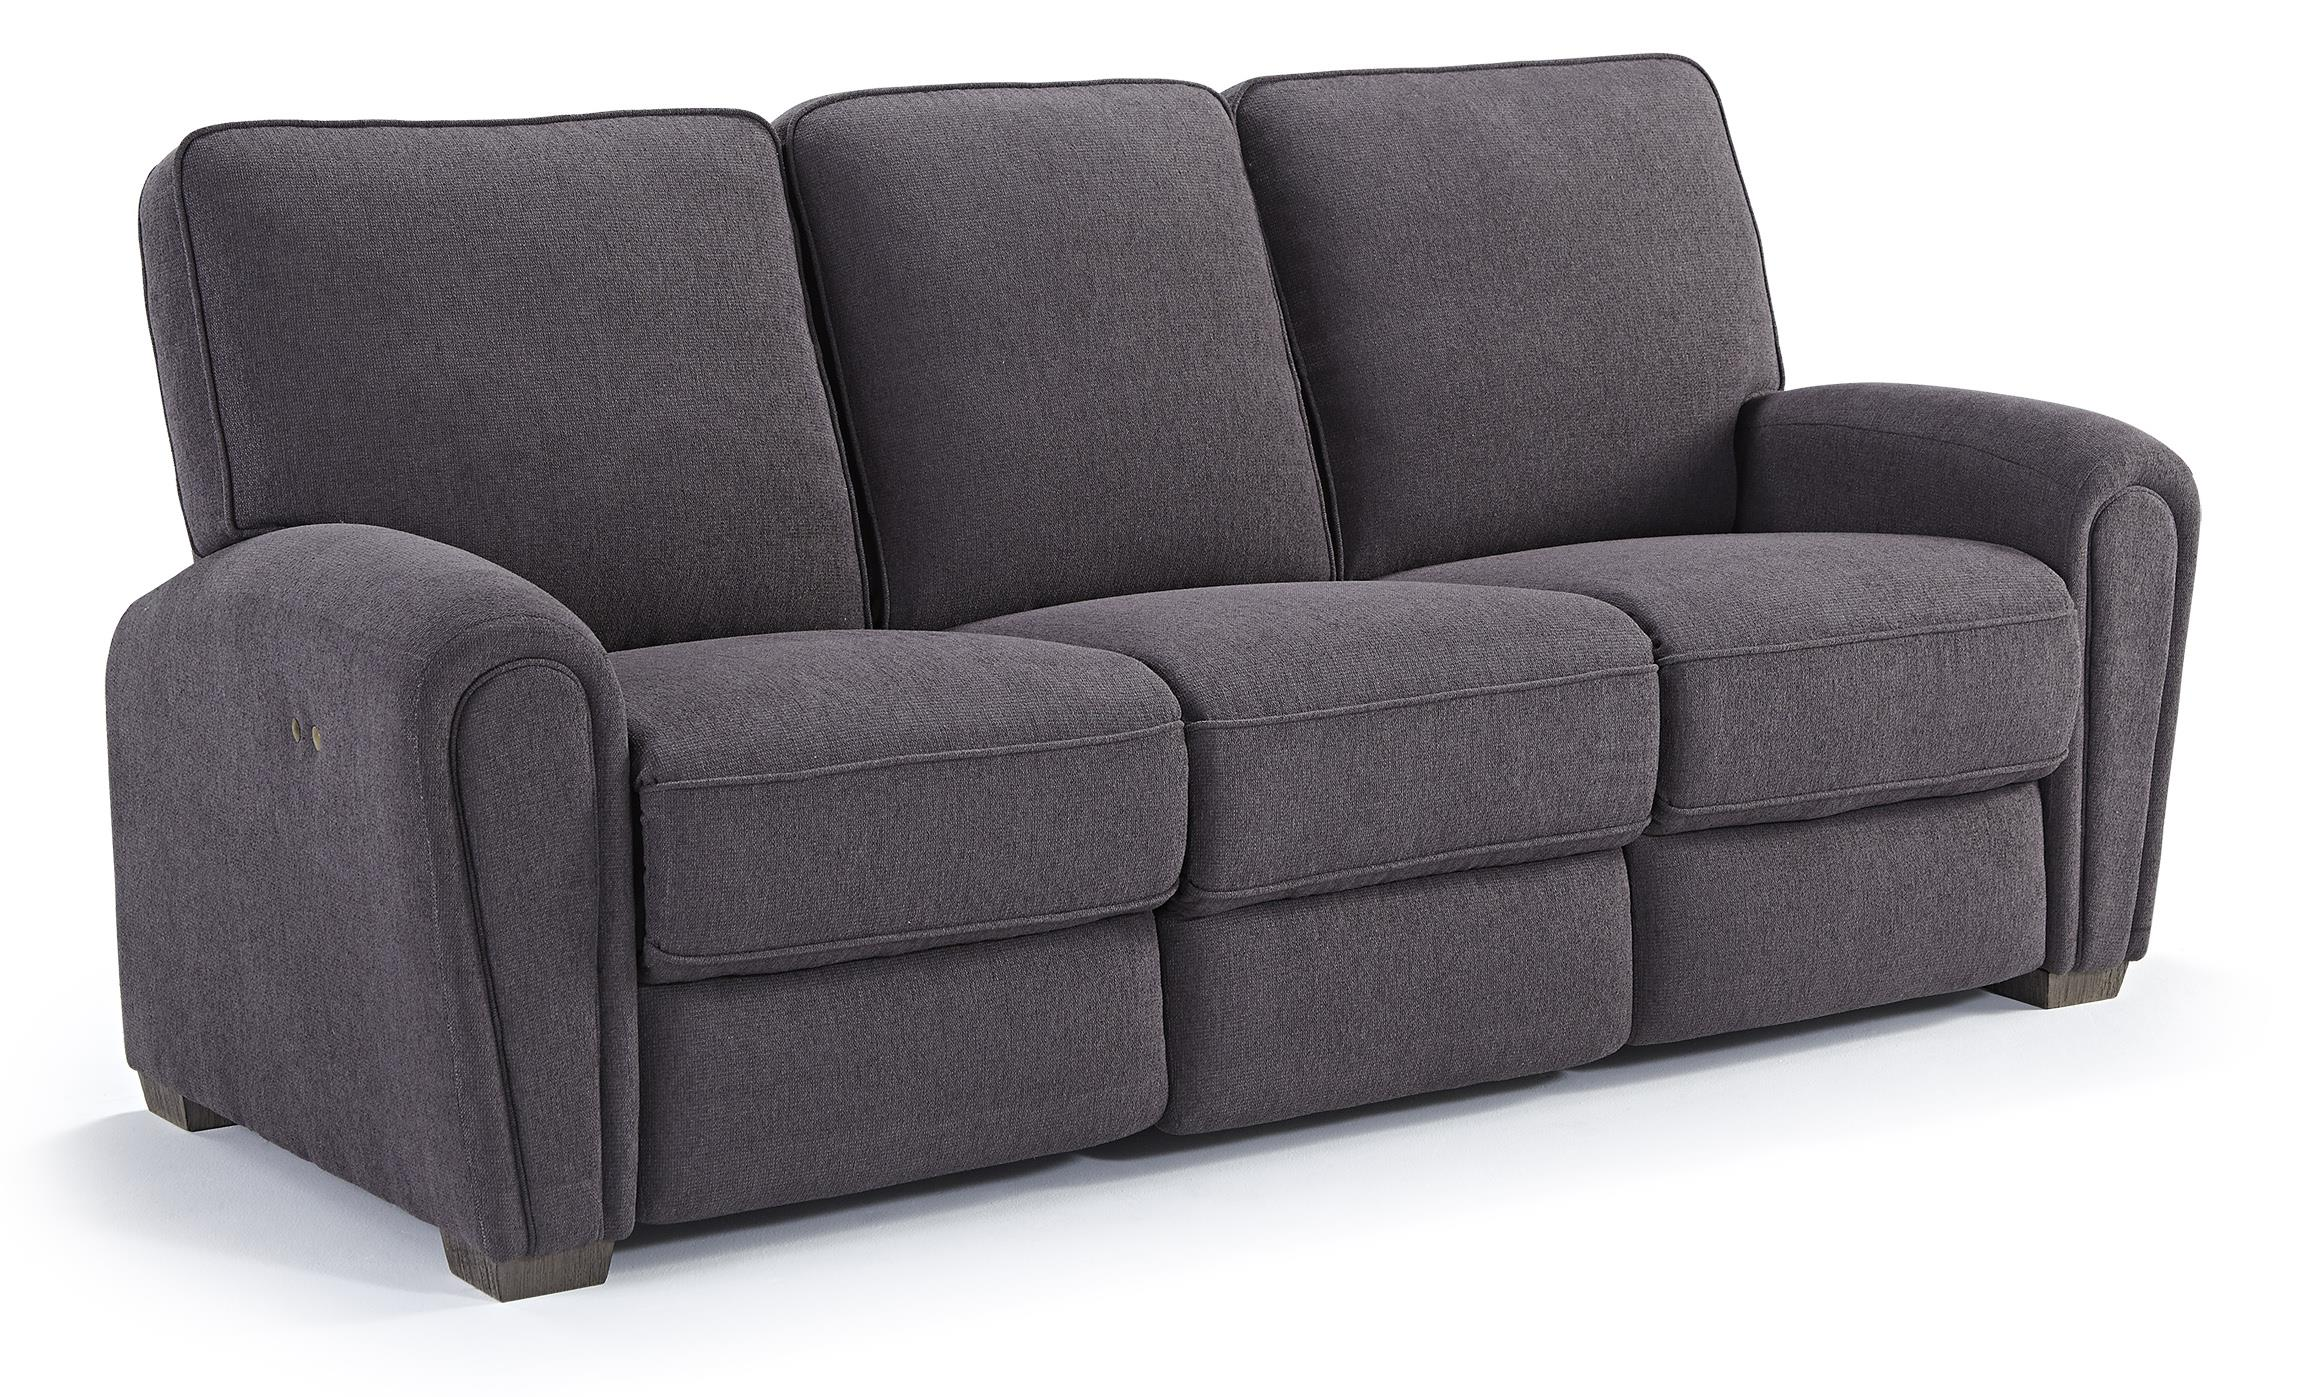 Best Home Furnishings Miriam Power Motion Sofa - Item Number: S907RP2-21563